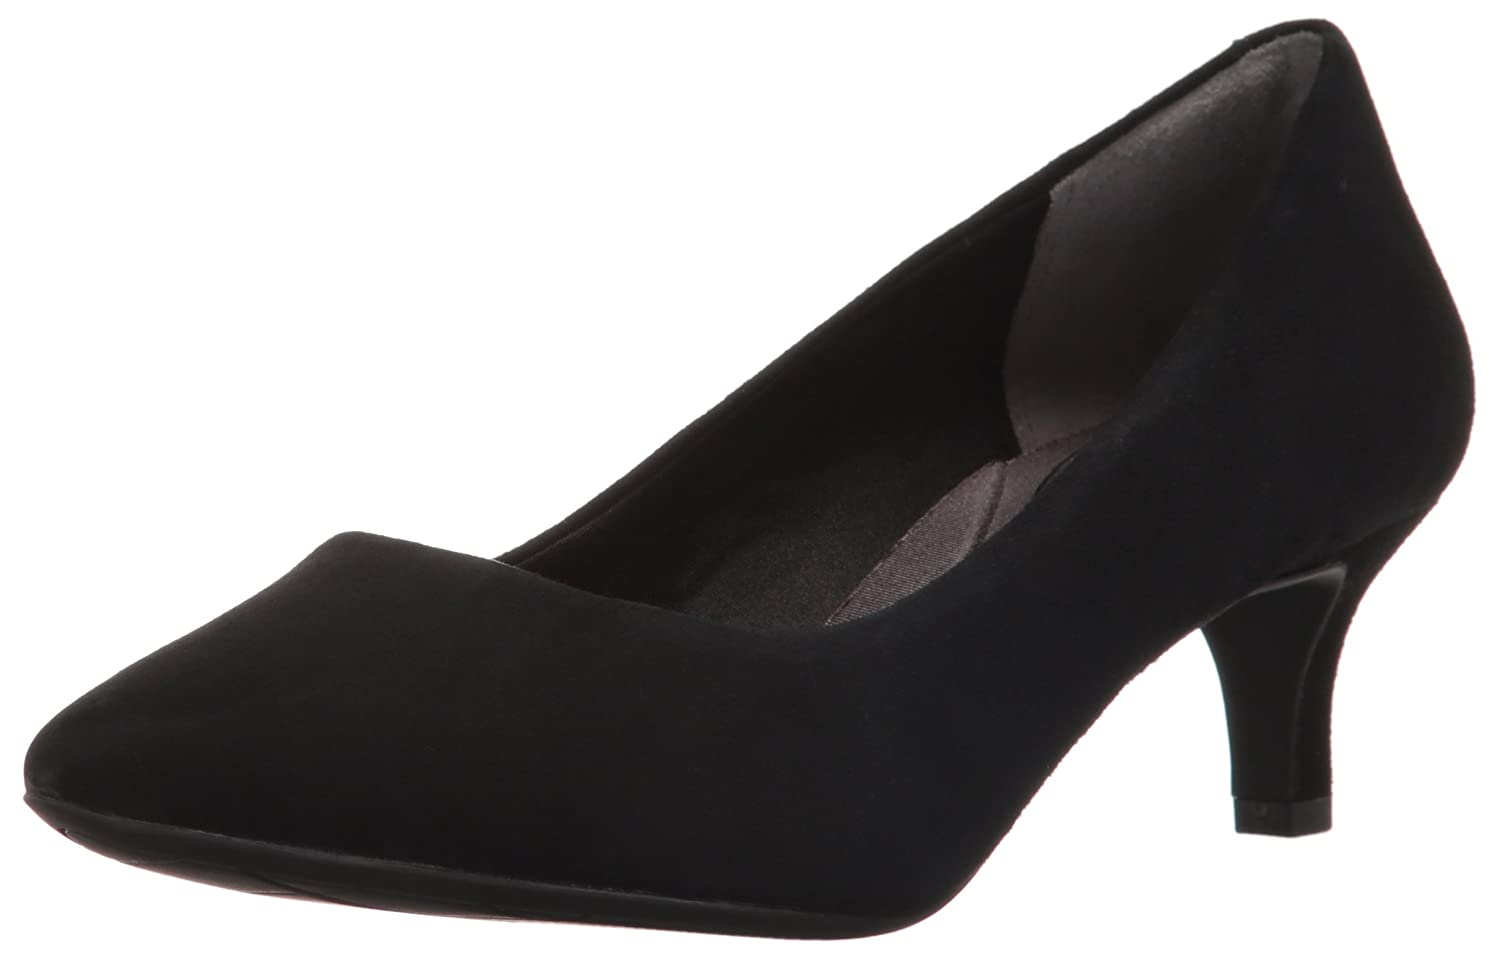 Rockport Women's Total Motion Kalila Dress Pump B01ABRZSGC 9.5 W US|Black Kid Suede